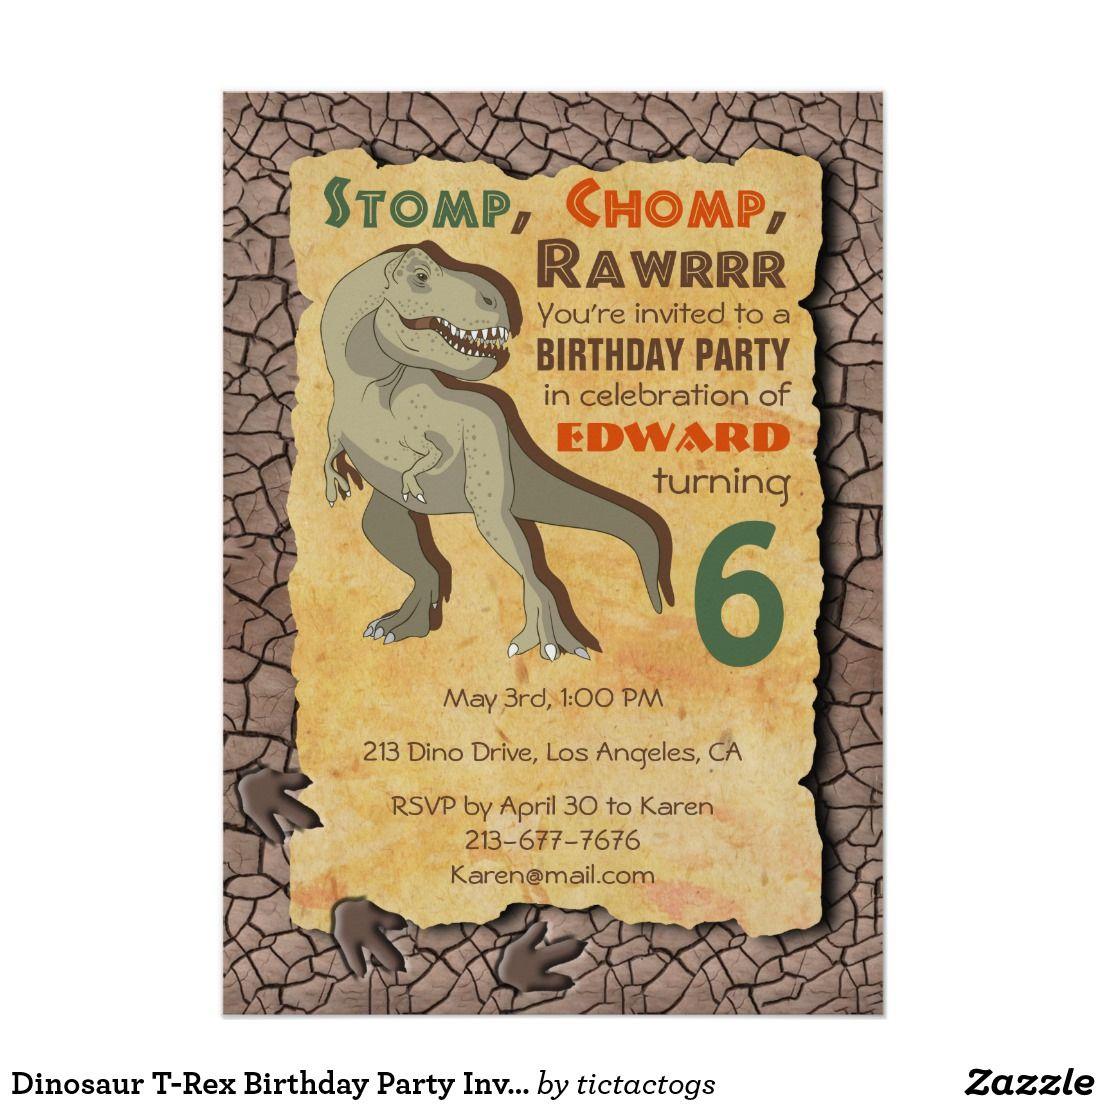 Dinosaur T Rex Birthday Party Invitation Have A Rawrrring Good With This Awesome Features The Tagline Stomp